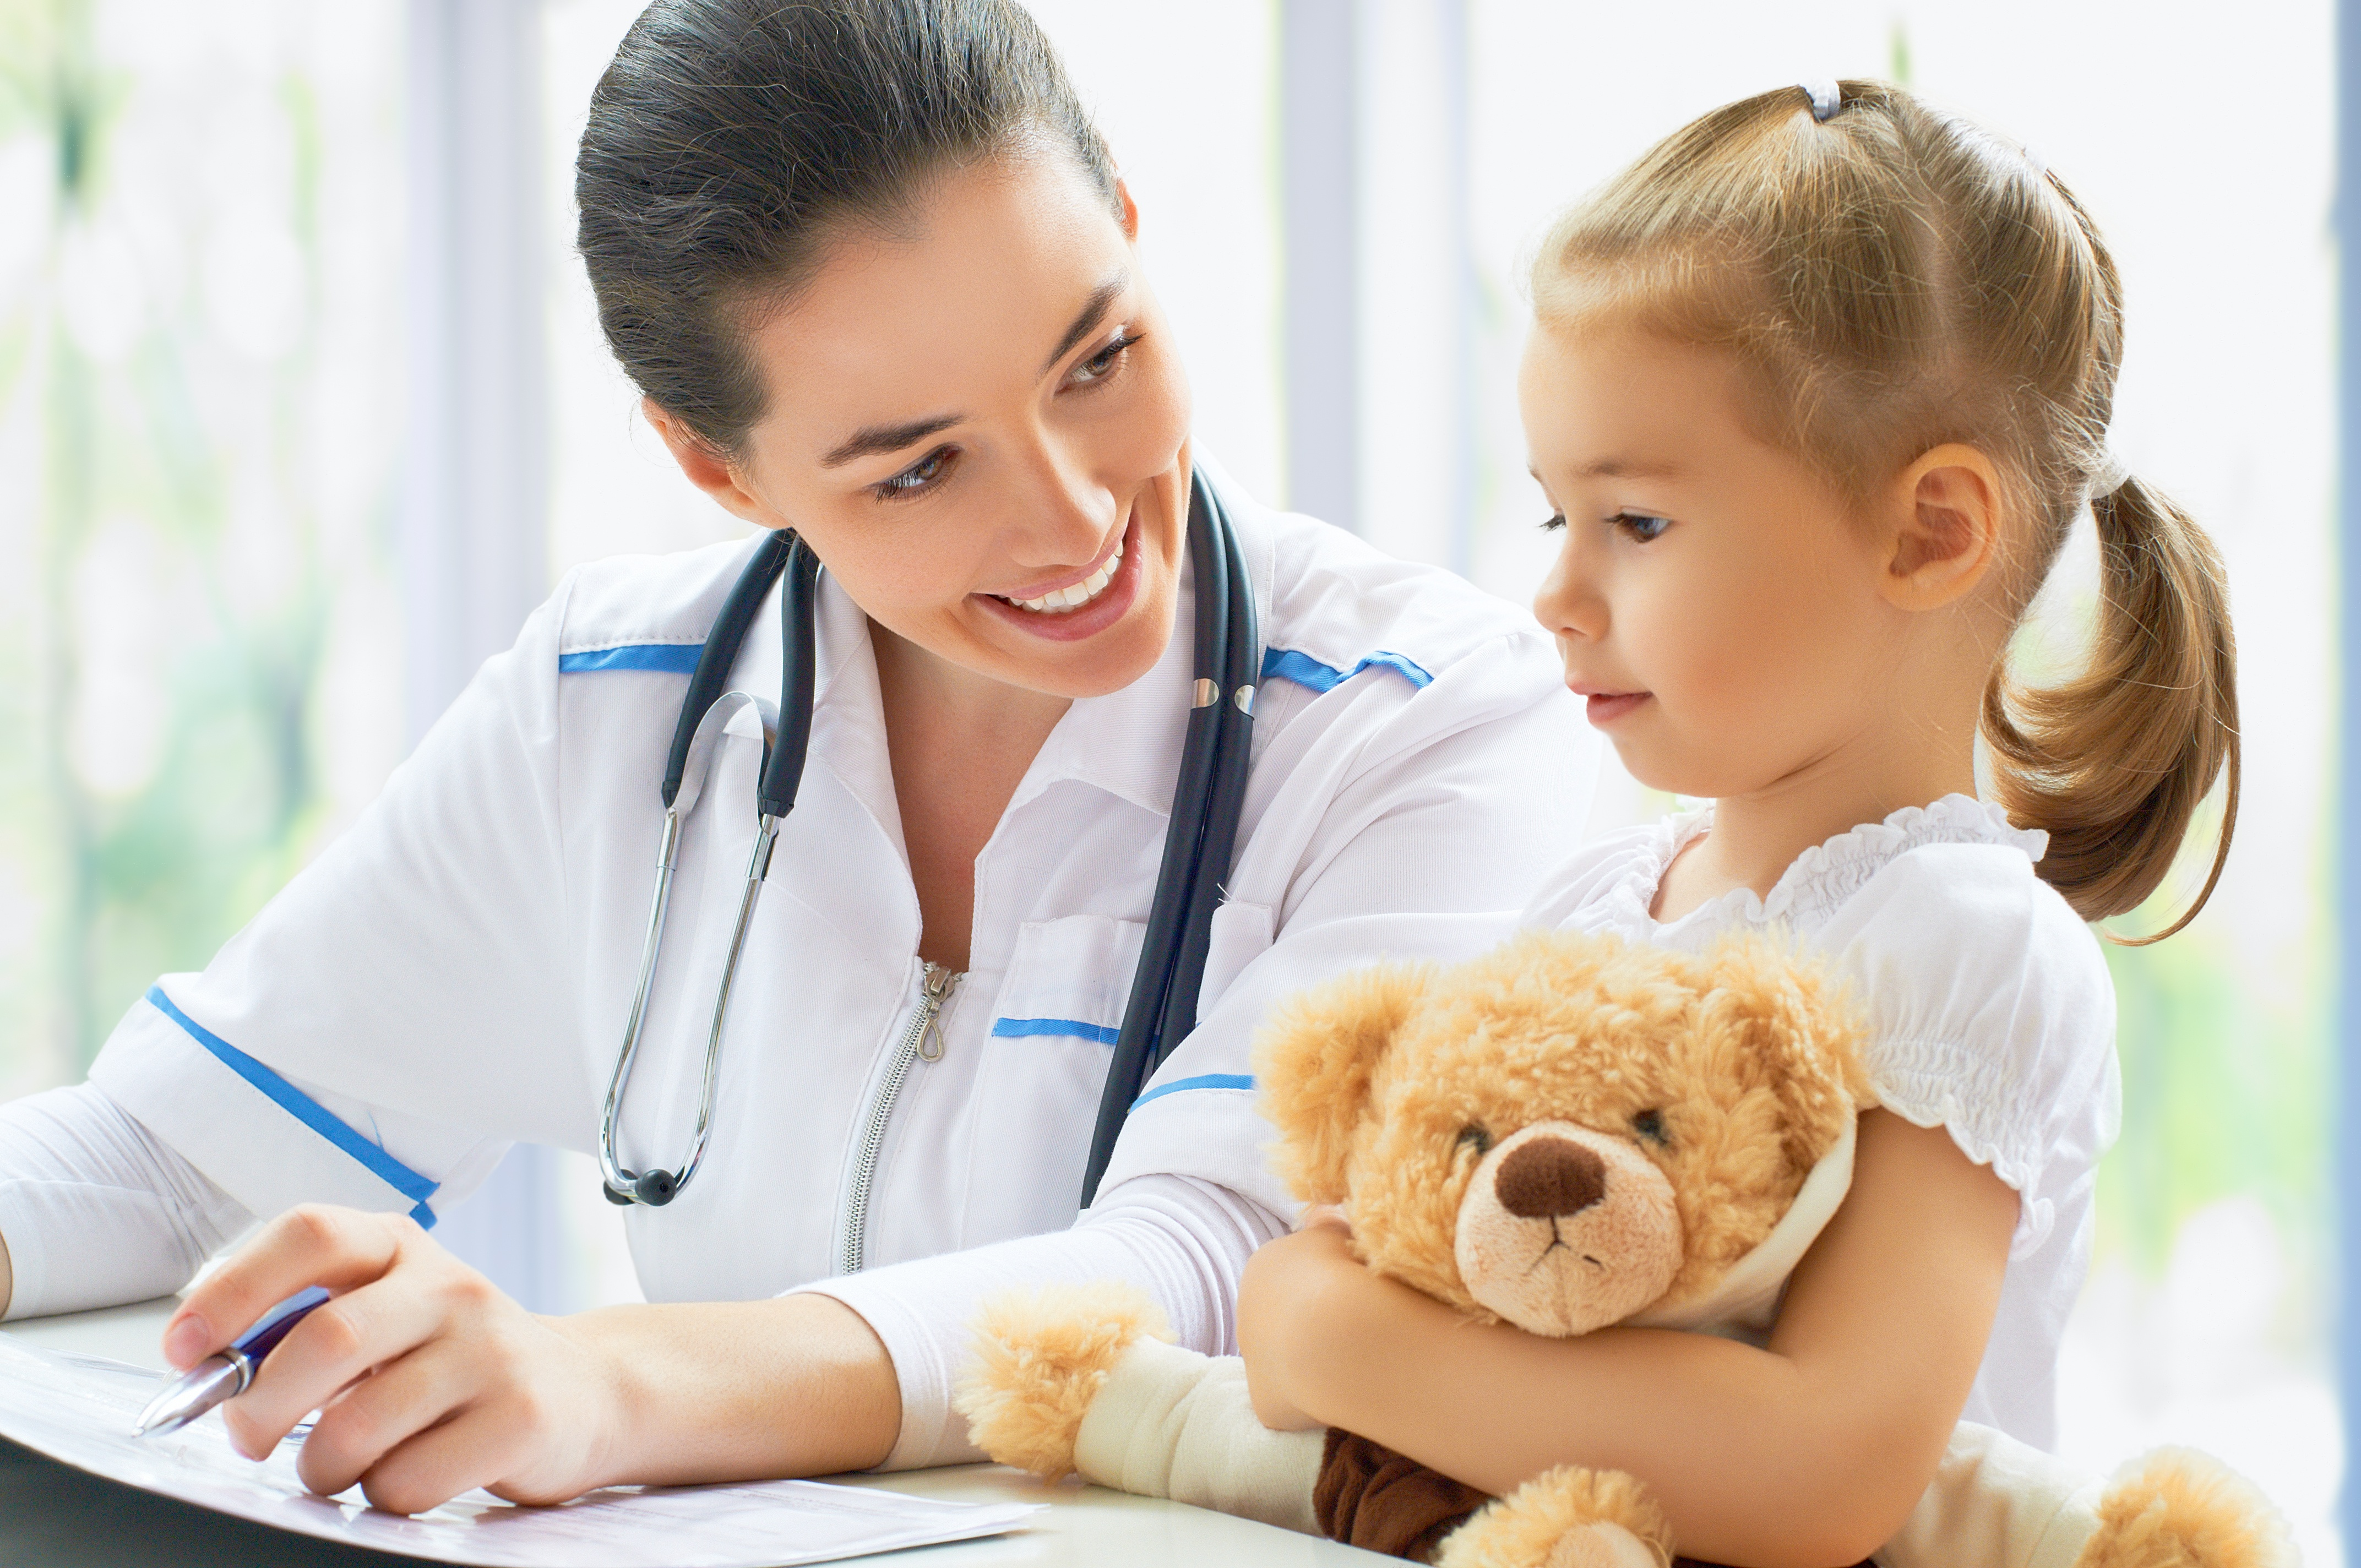 physician smiles at her young patient who is holding a teddy bear